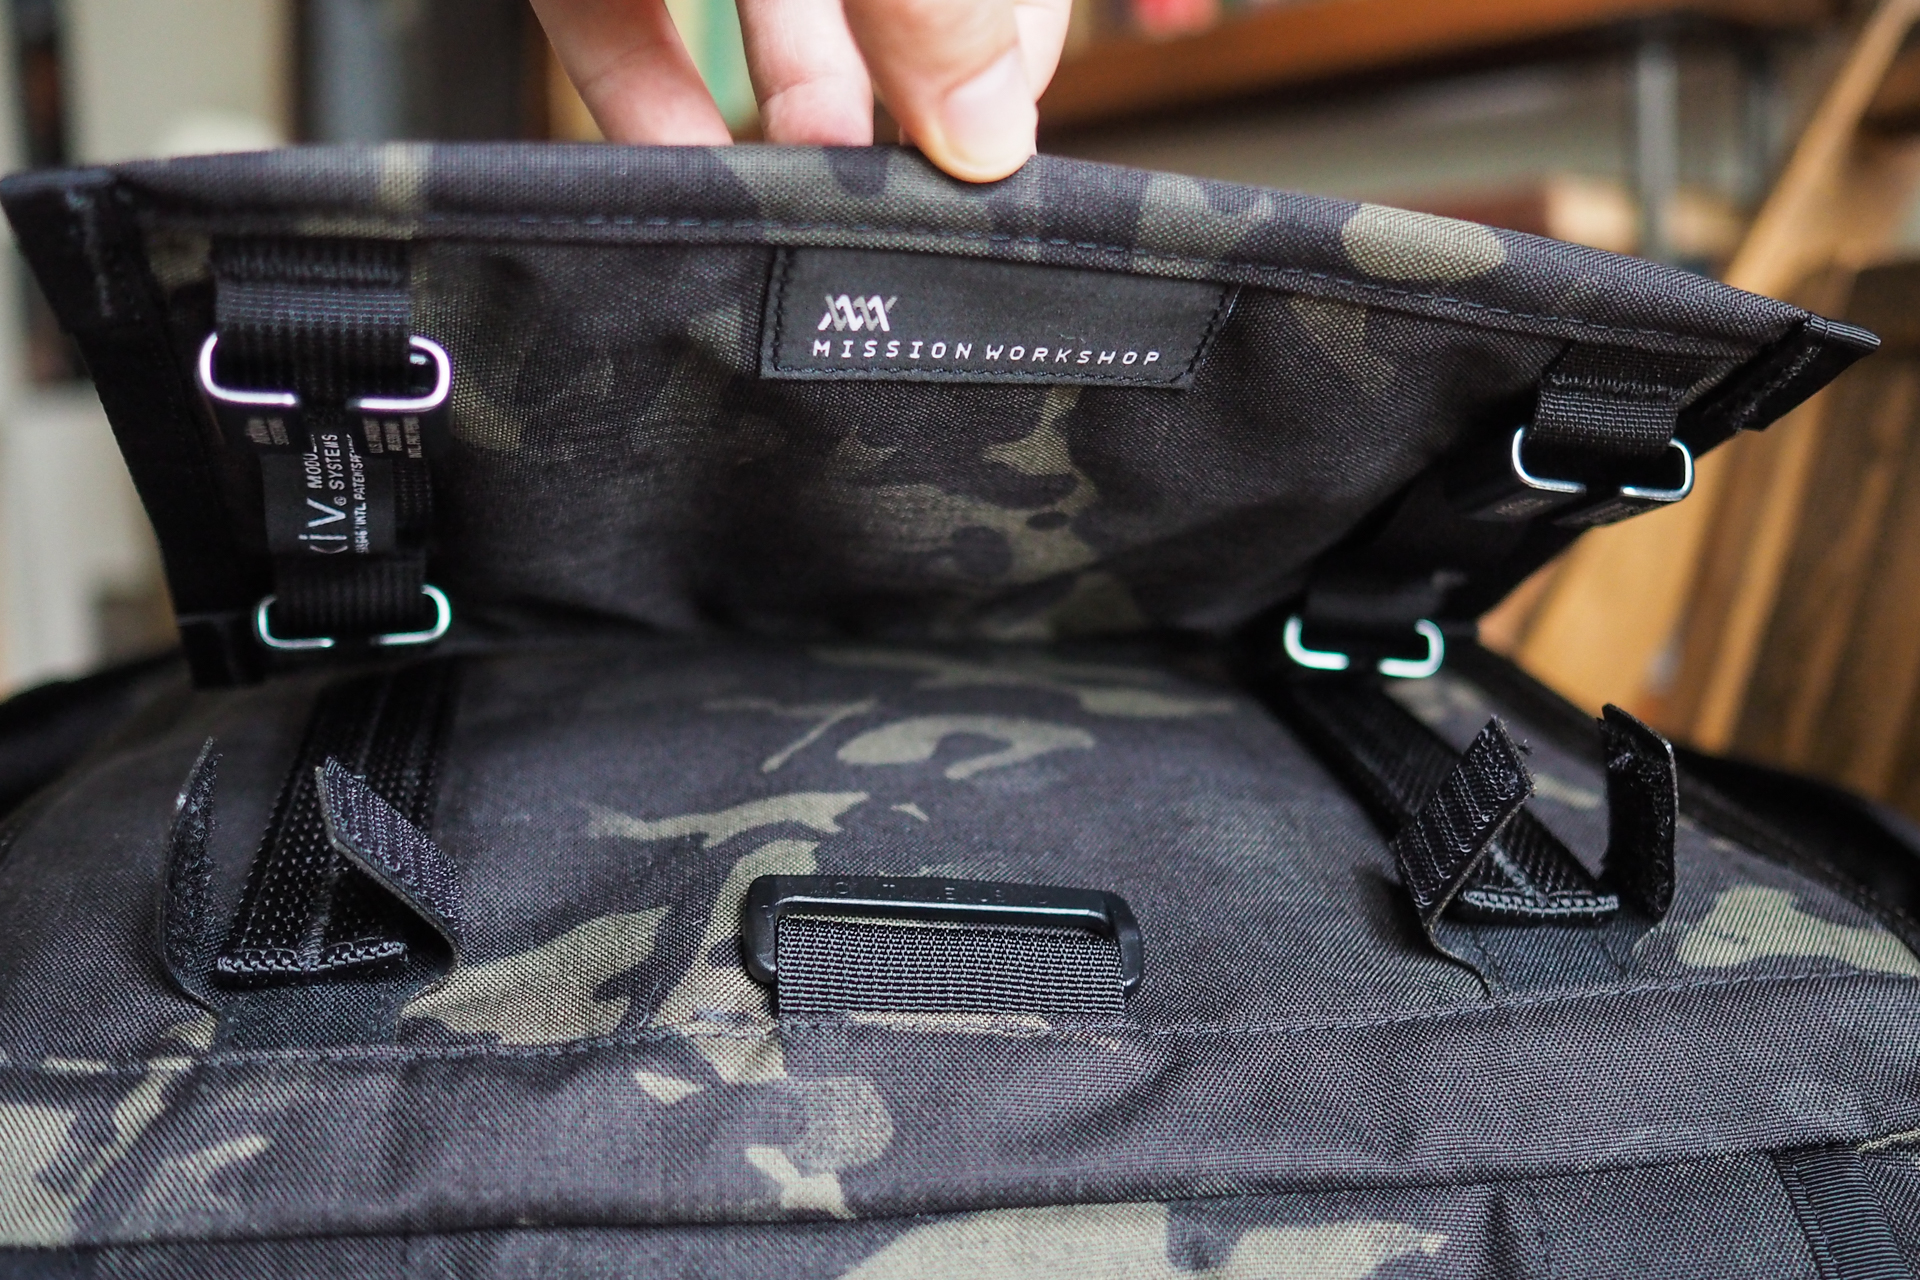 Bag Week 2018: Mission Workshop's Radian rolltop starts simple but grows piece by piece